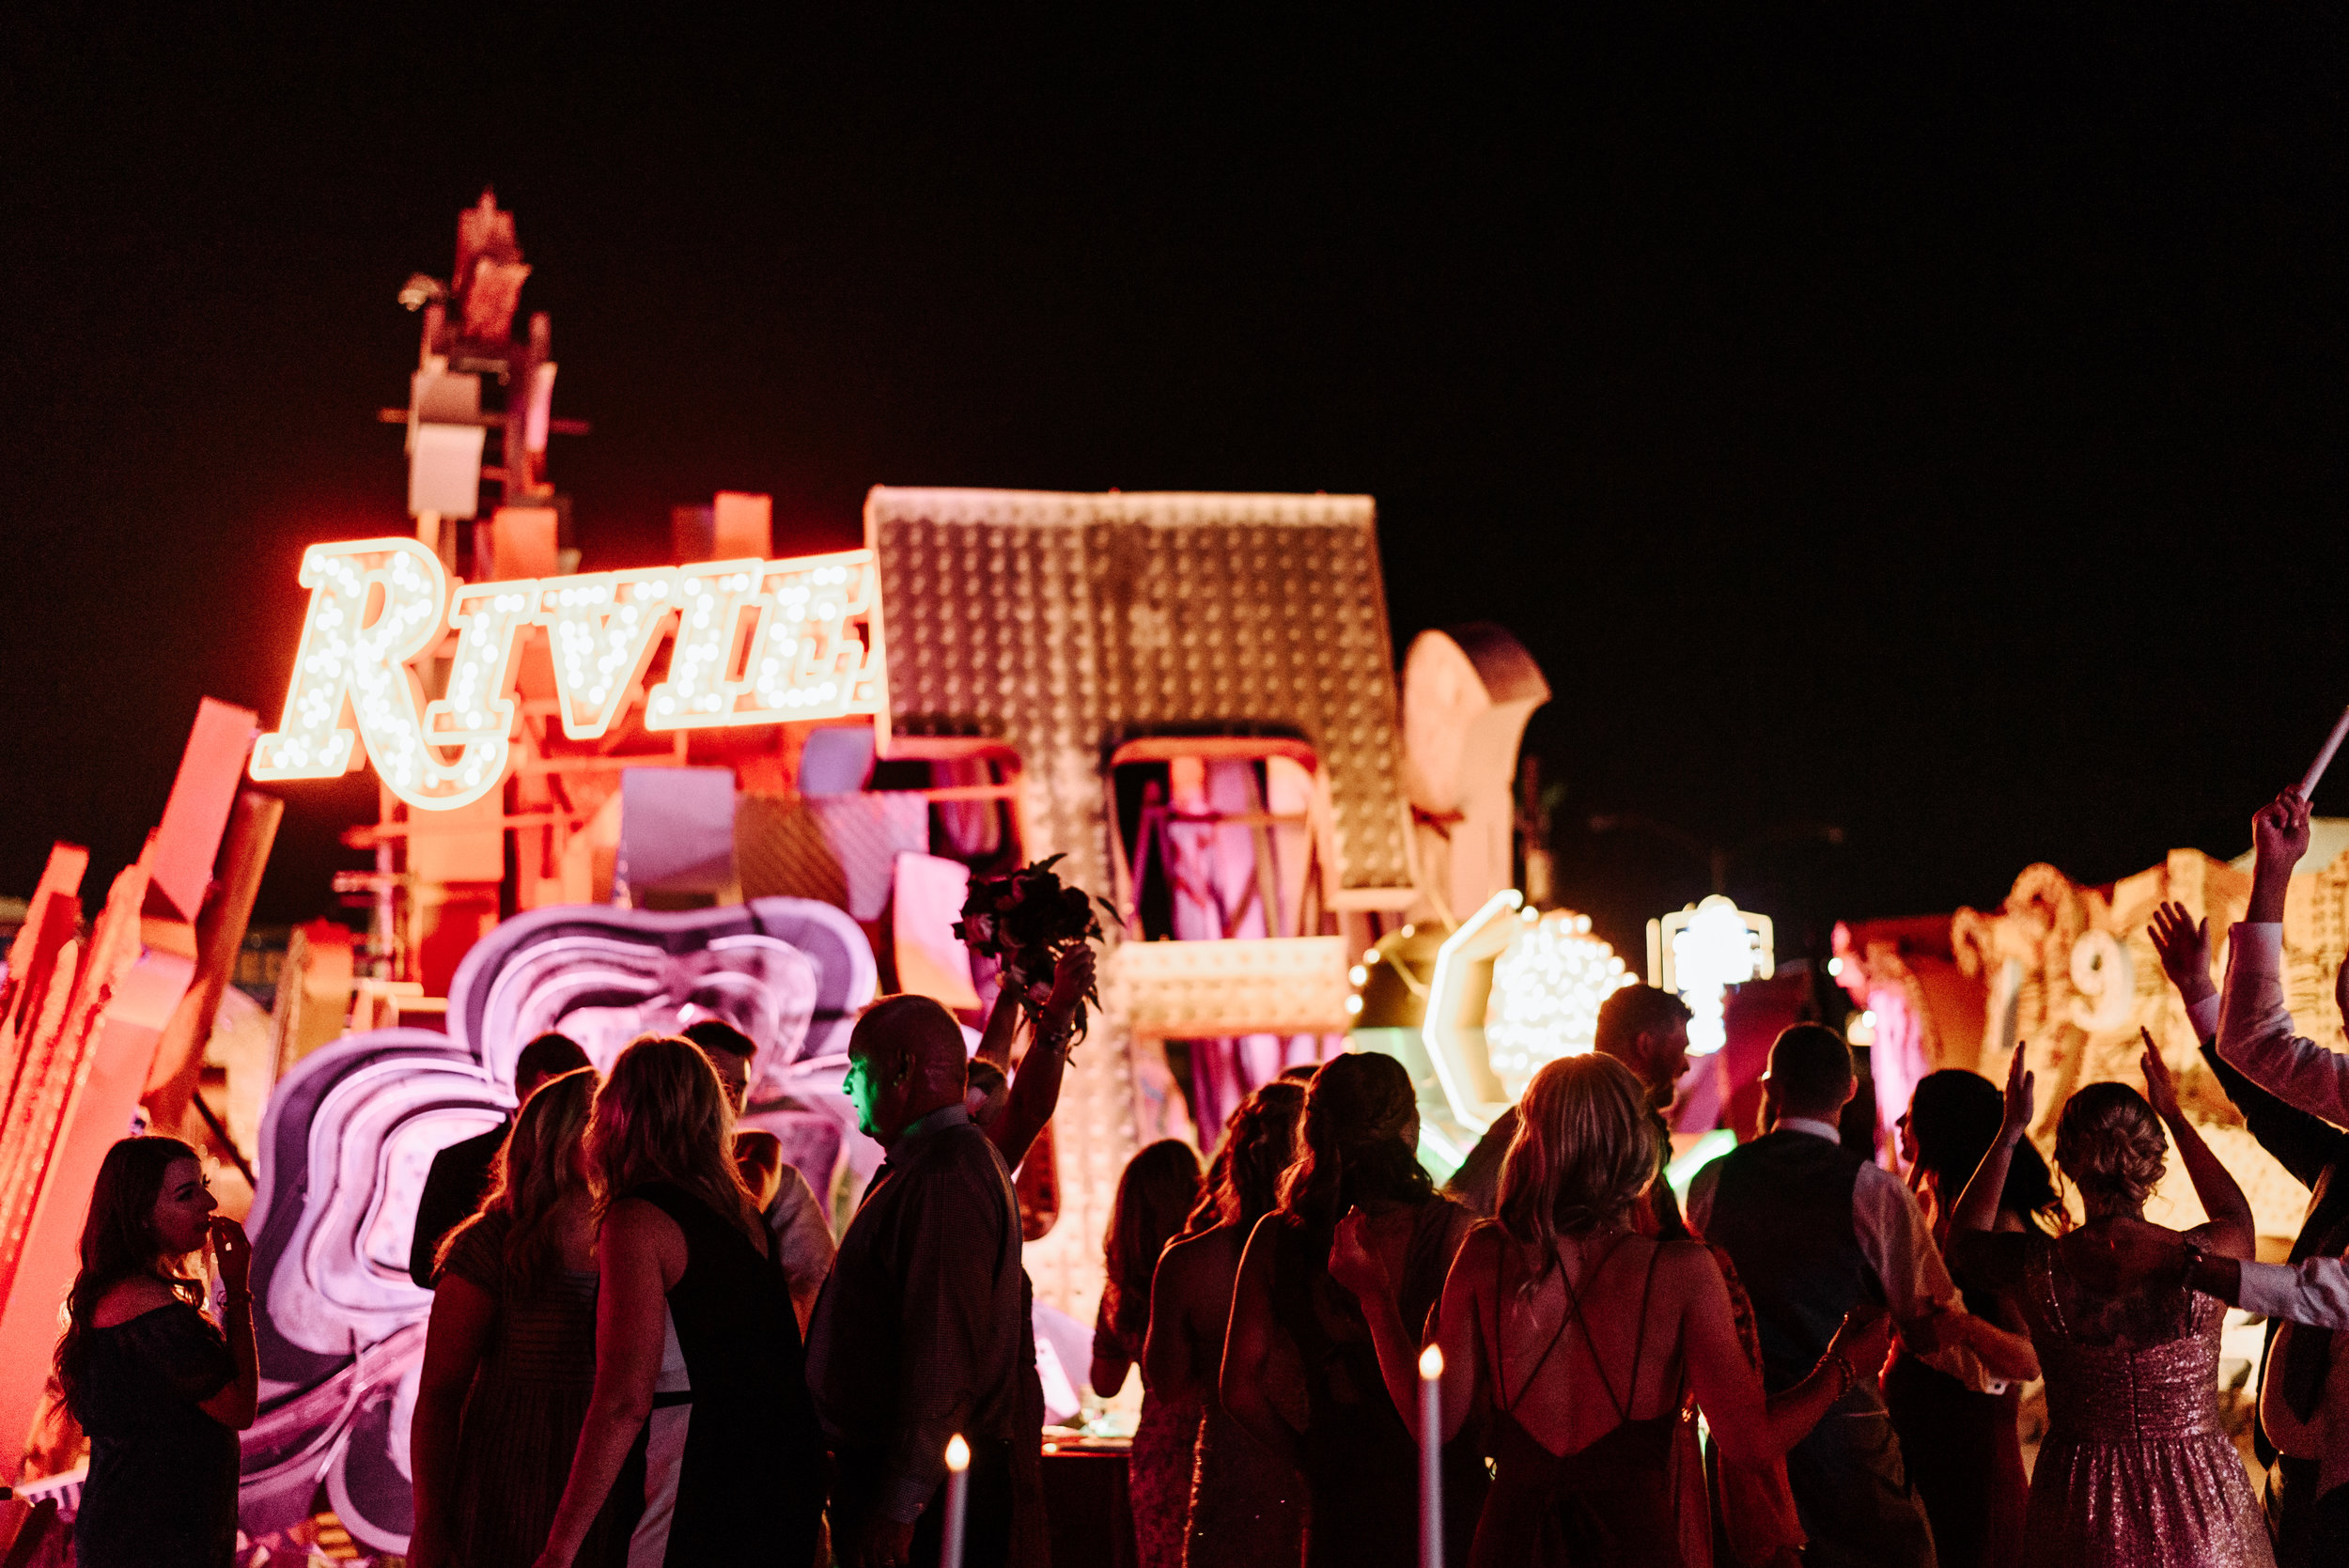 Neon-Museum-Wedding-Las-Vegas-Nevada-Golden-Nugget-Photography-by-V-Ally-and-Dan-7332.jpg